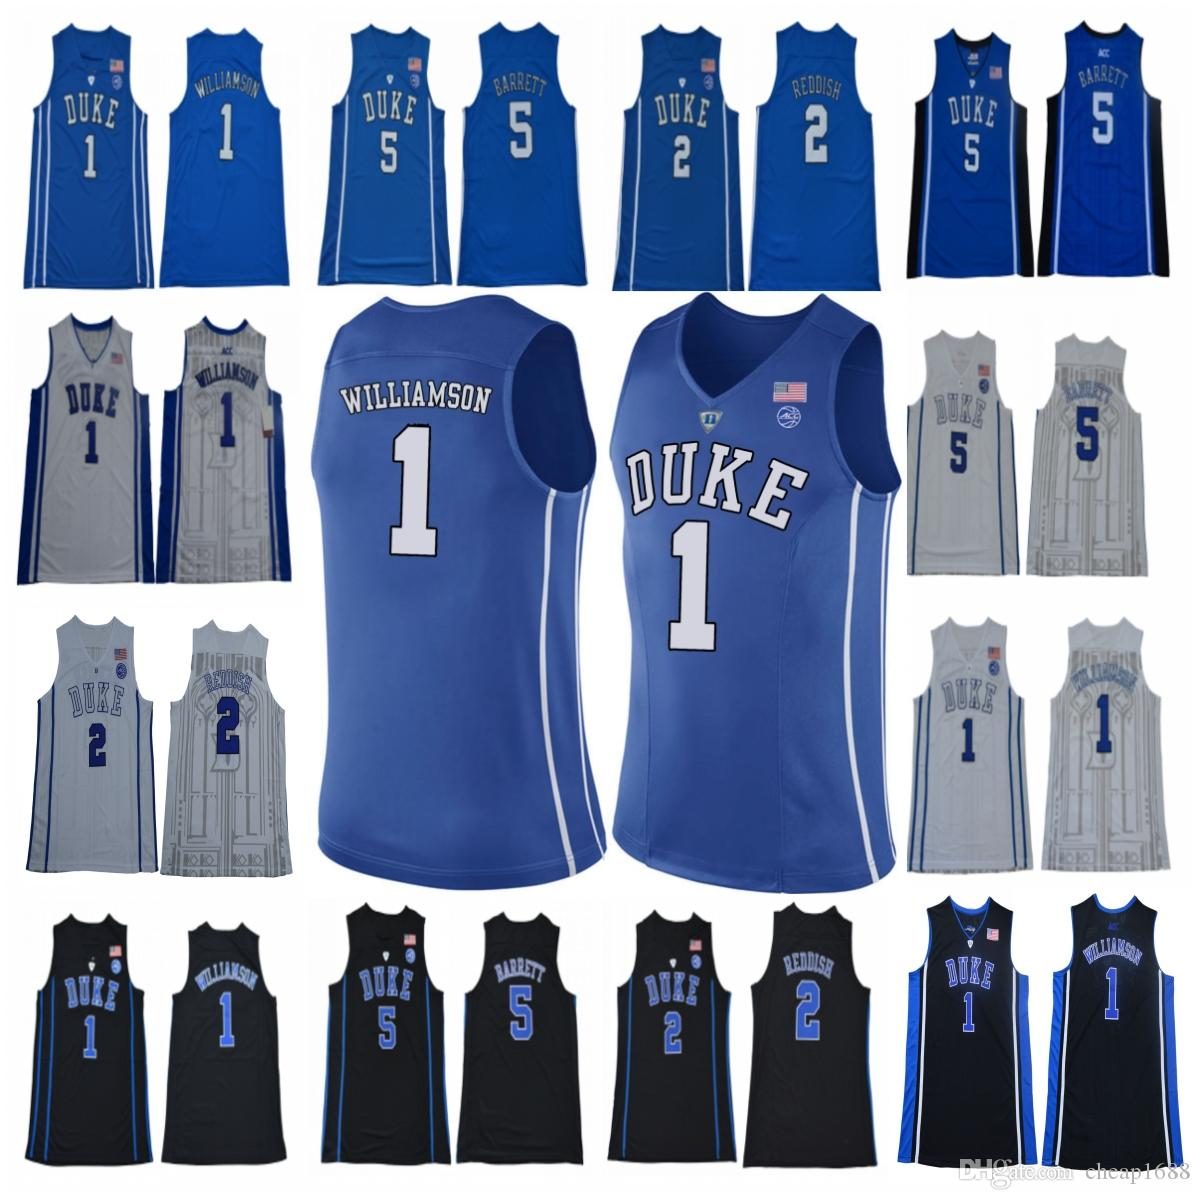 0d75e8b5135 2019 NCAA Duke Blue Devils 1 Zion Williamson 5 RJ Barrett 2 Cam Reddish  White Blue Black Men Youth College Basketball Jerseys From Cheap1688